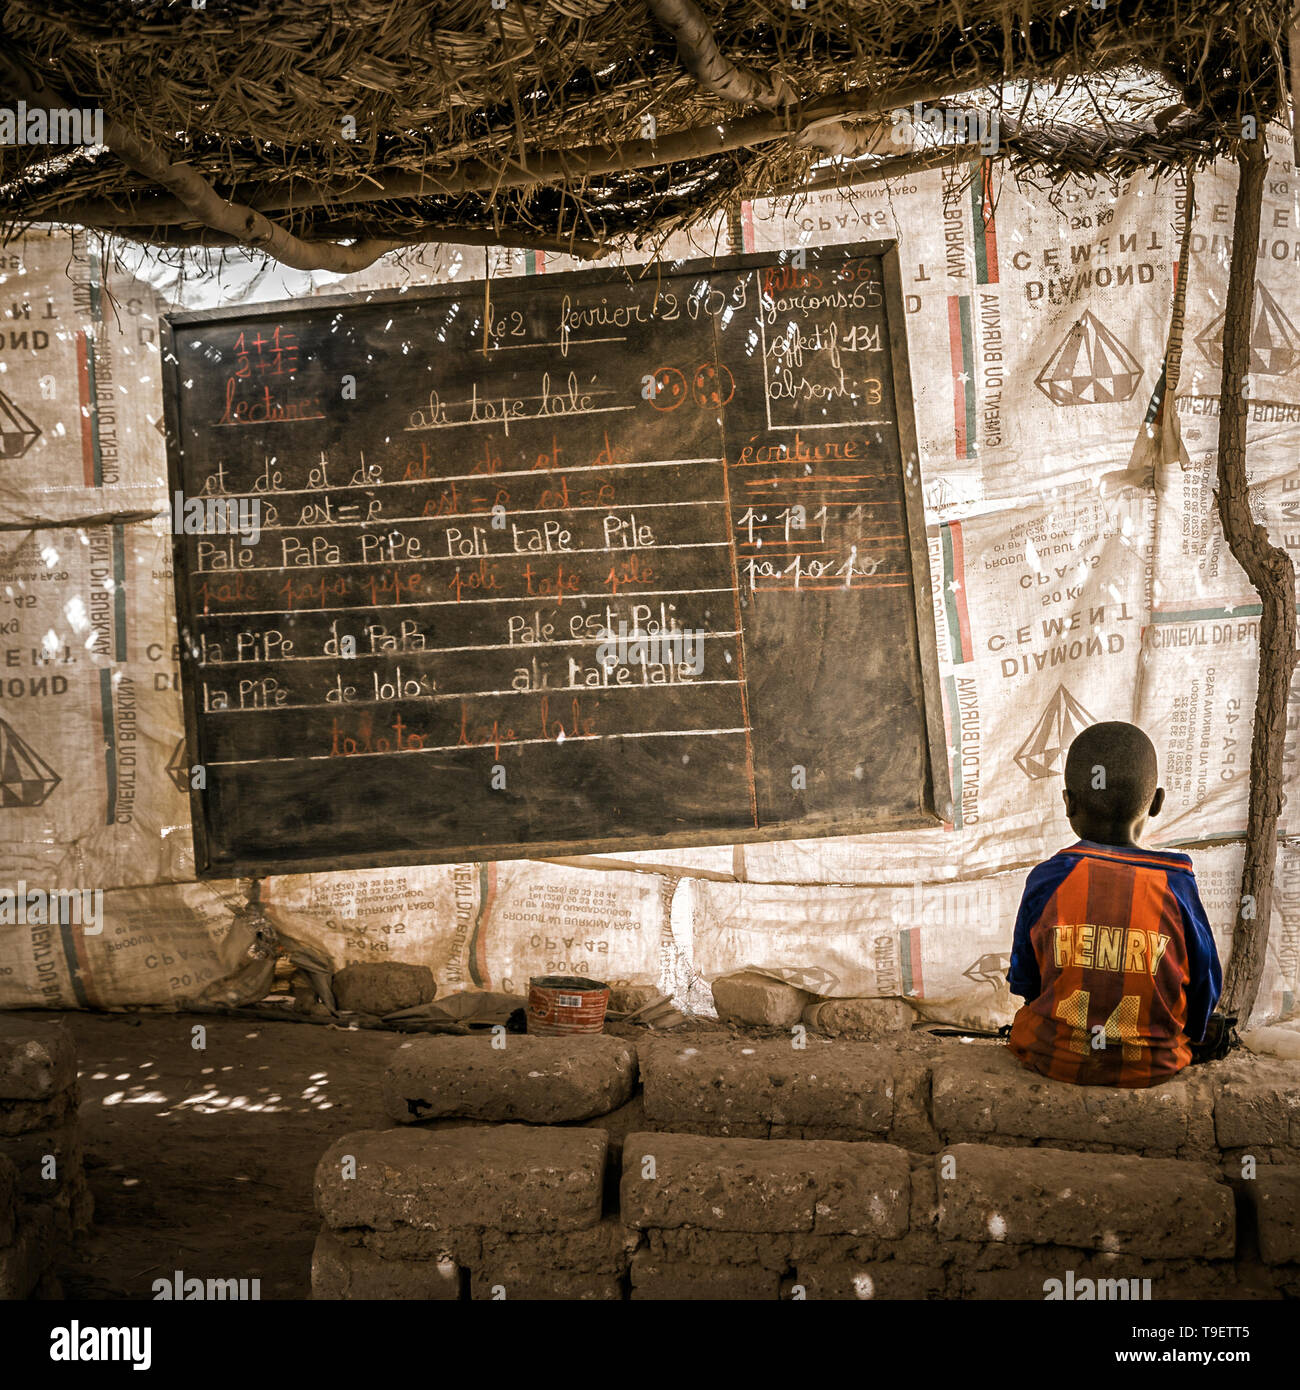 Young african kid alone in a classroom in the slums of Ouagadougou, Burkina Faso. Blackboard with french writings. Education in Africa concept. - Stock Image